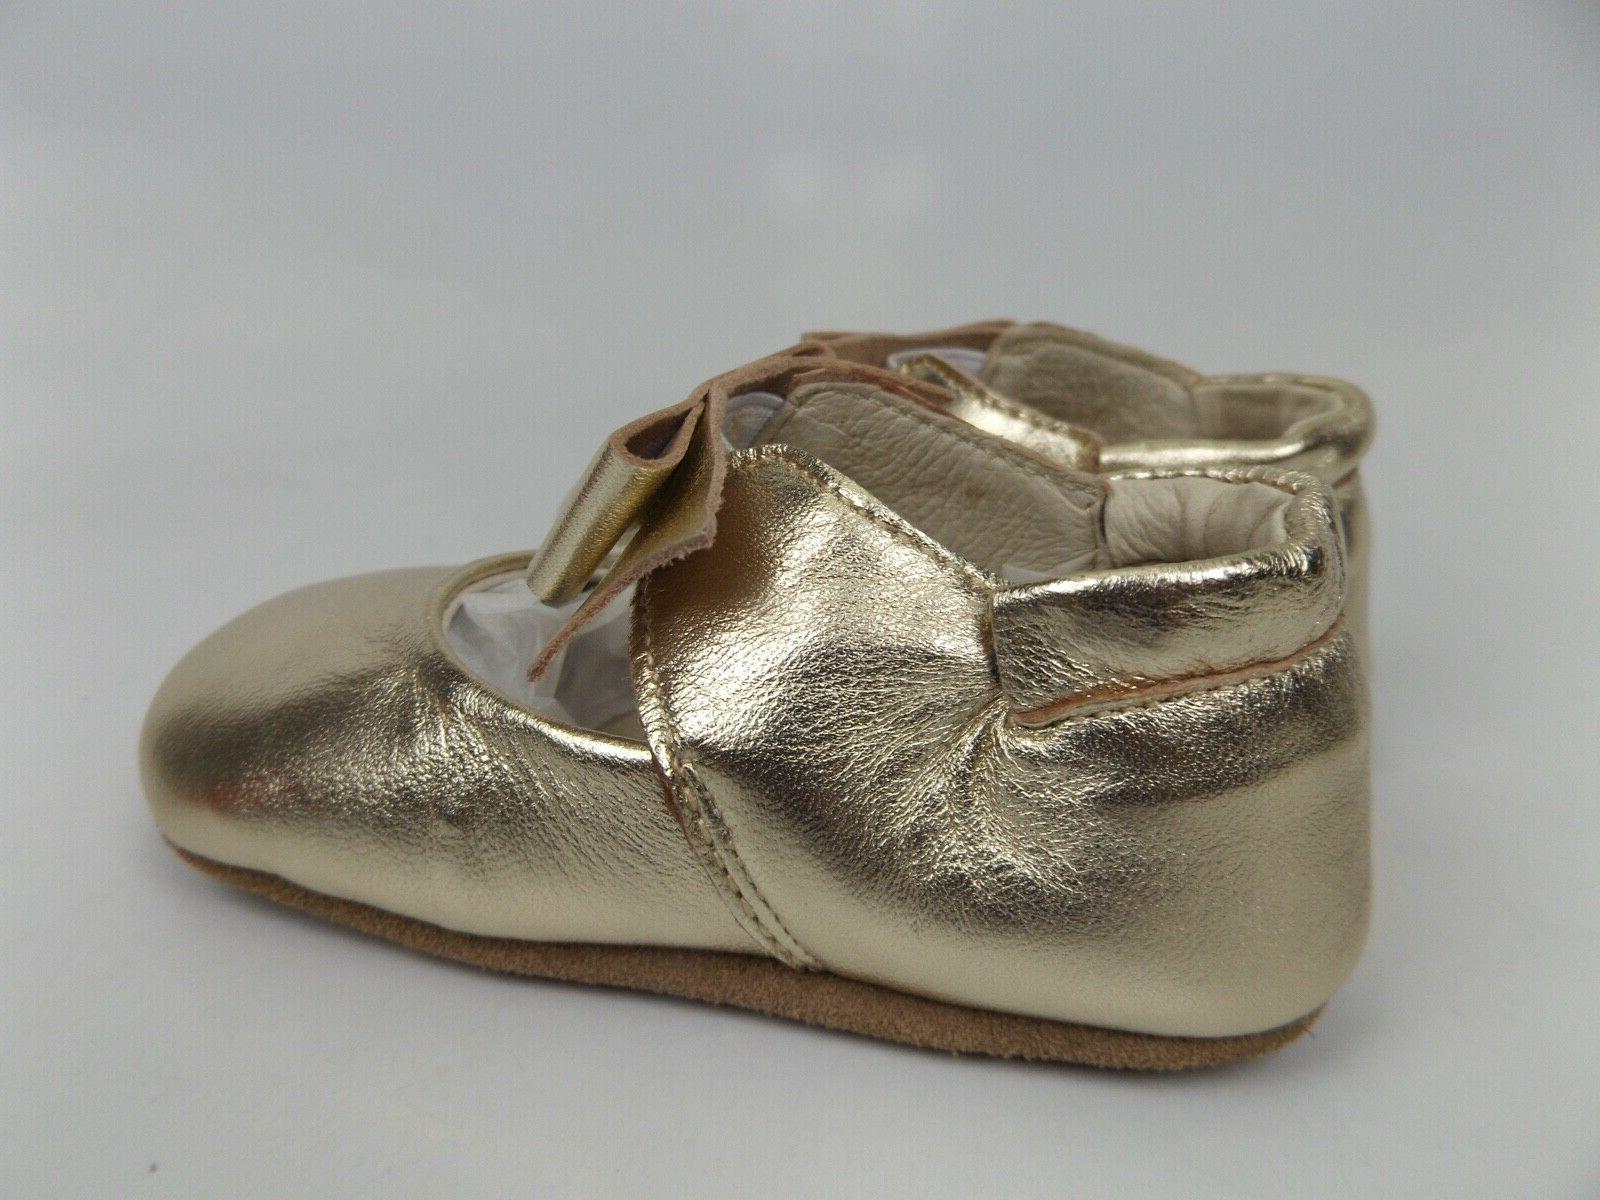 NEW! Robeez First Sophia Soft Leather Shoes 12-18 Months